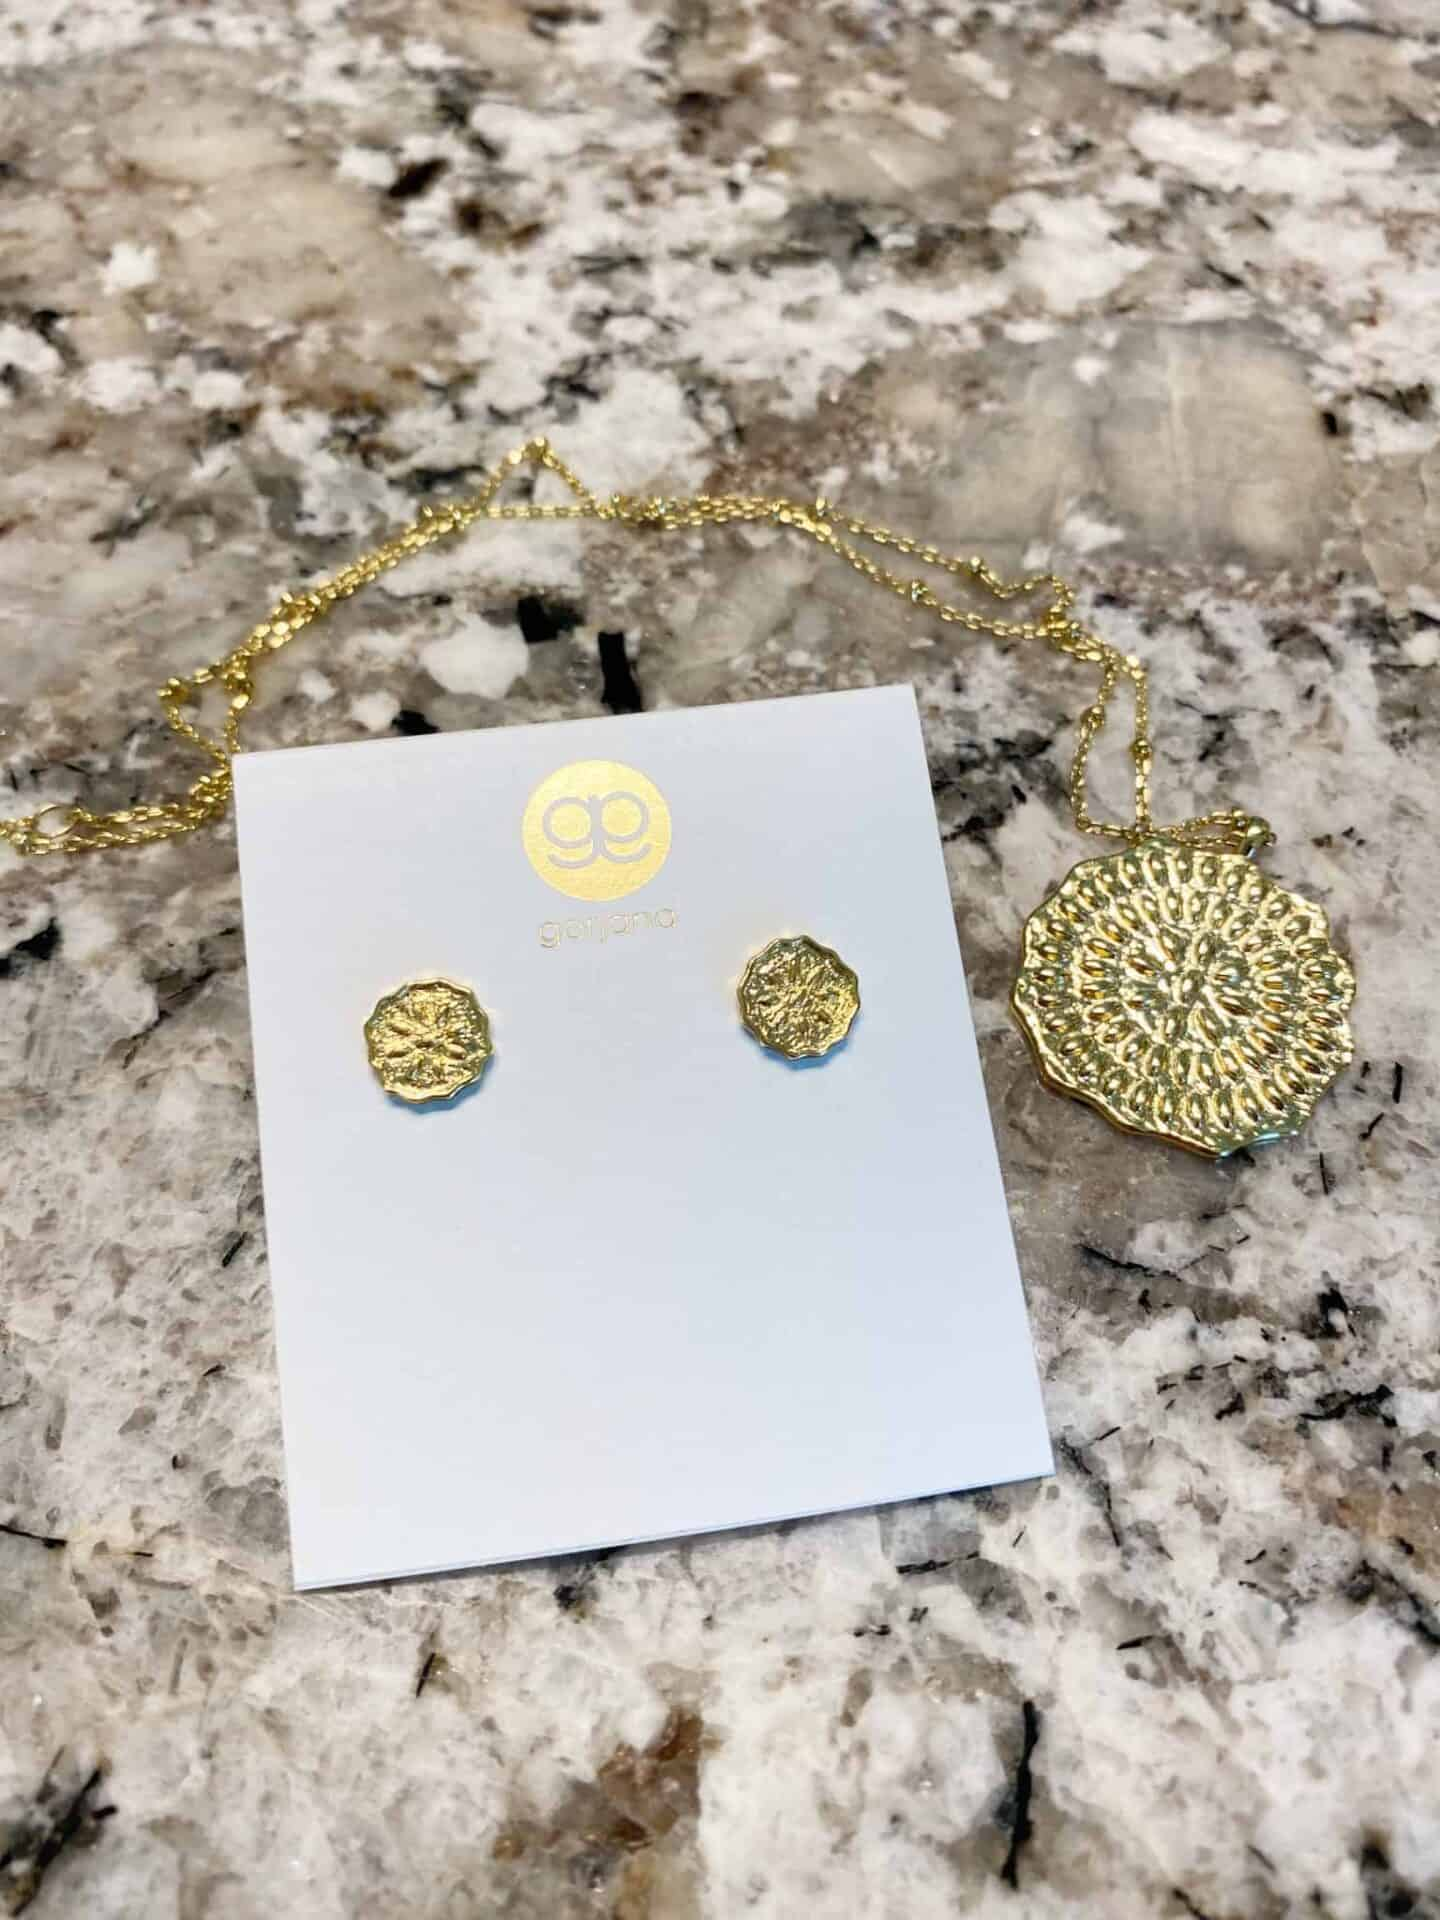 Gorjana-Mosaic-Coin-Necklace-and-Earrings